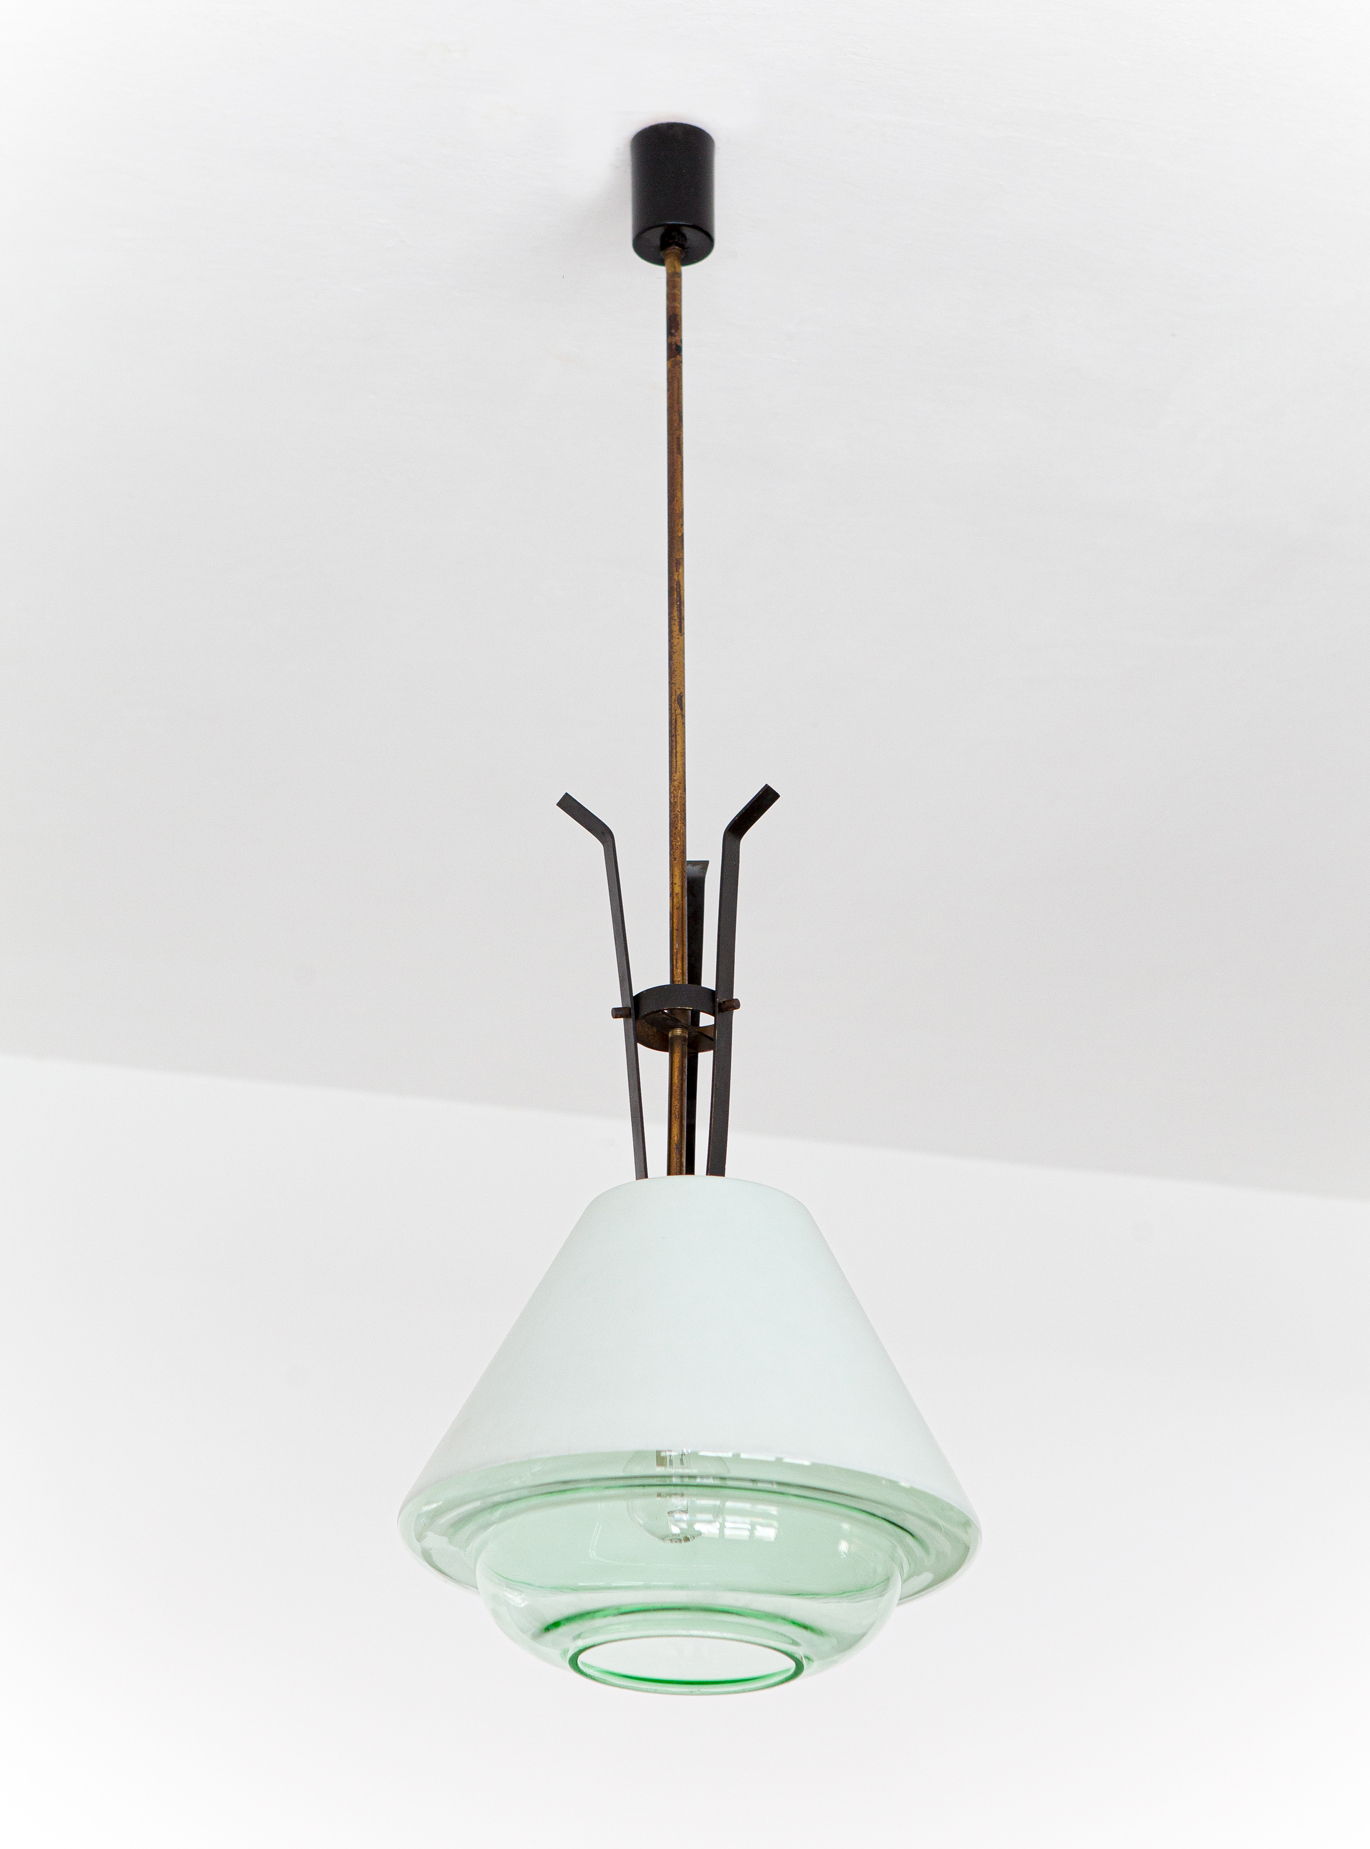 1950s-brass-and-glass-pendant-lamp-by-stlnovo-1-l92